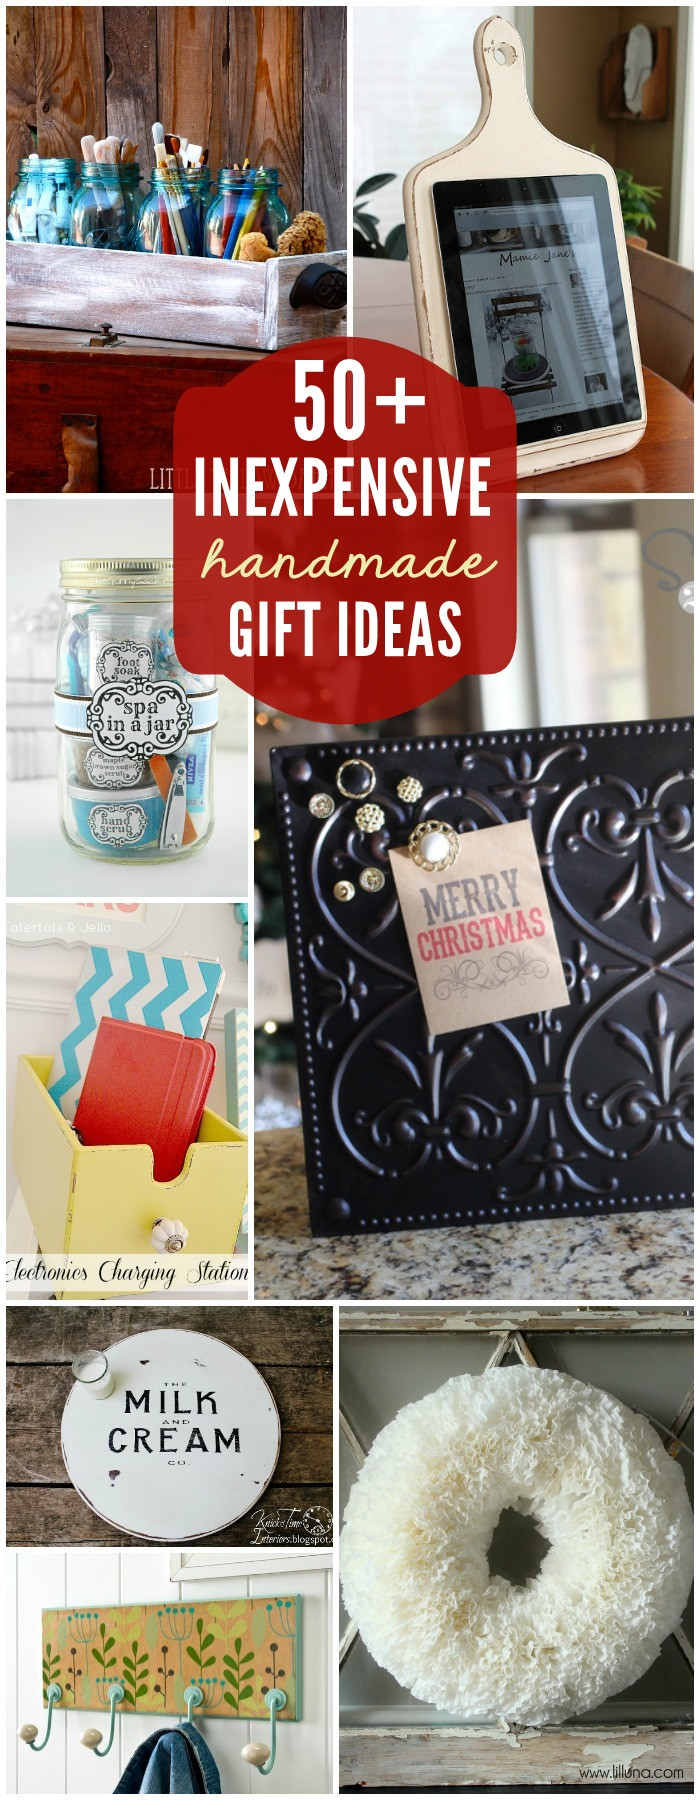 Inexpensive Christmas Gift Ideas  75 Gift Ideas under $5